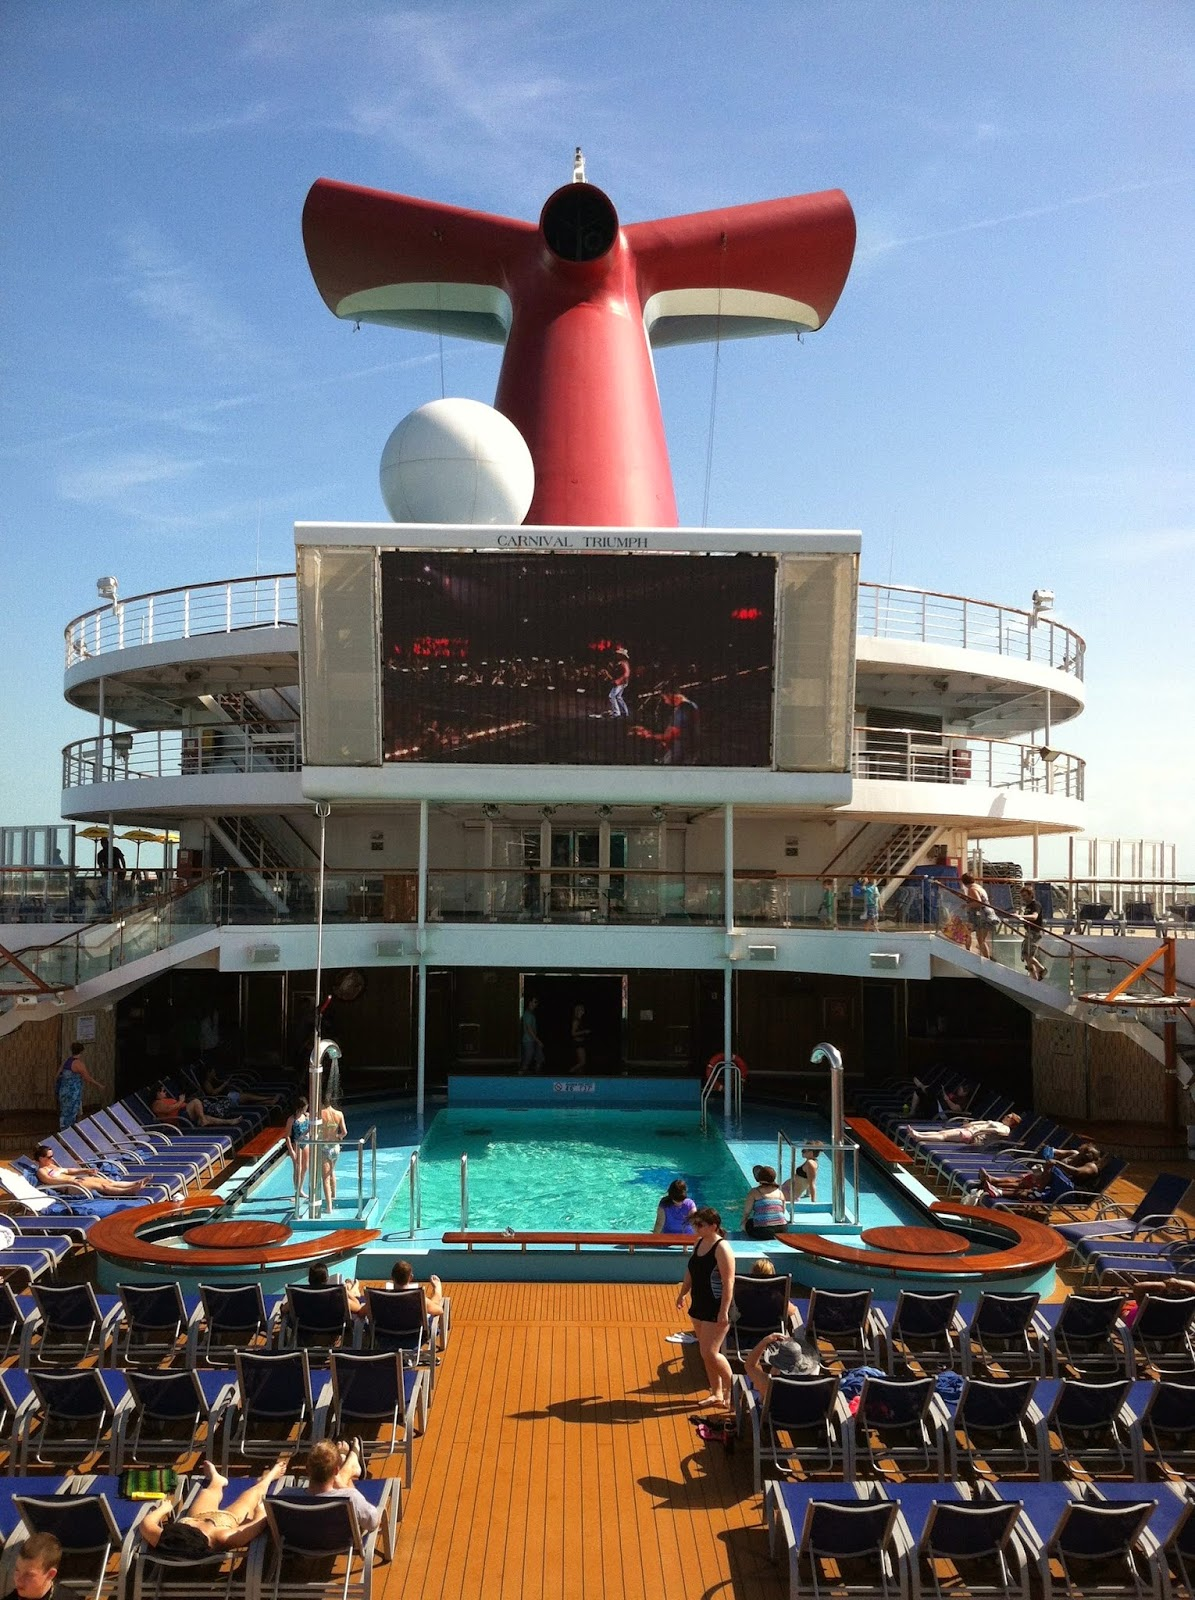 Ray S Cruise Amp Travel Blog Carnival Triumph Cruise Review